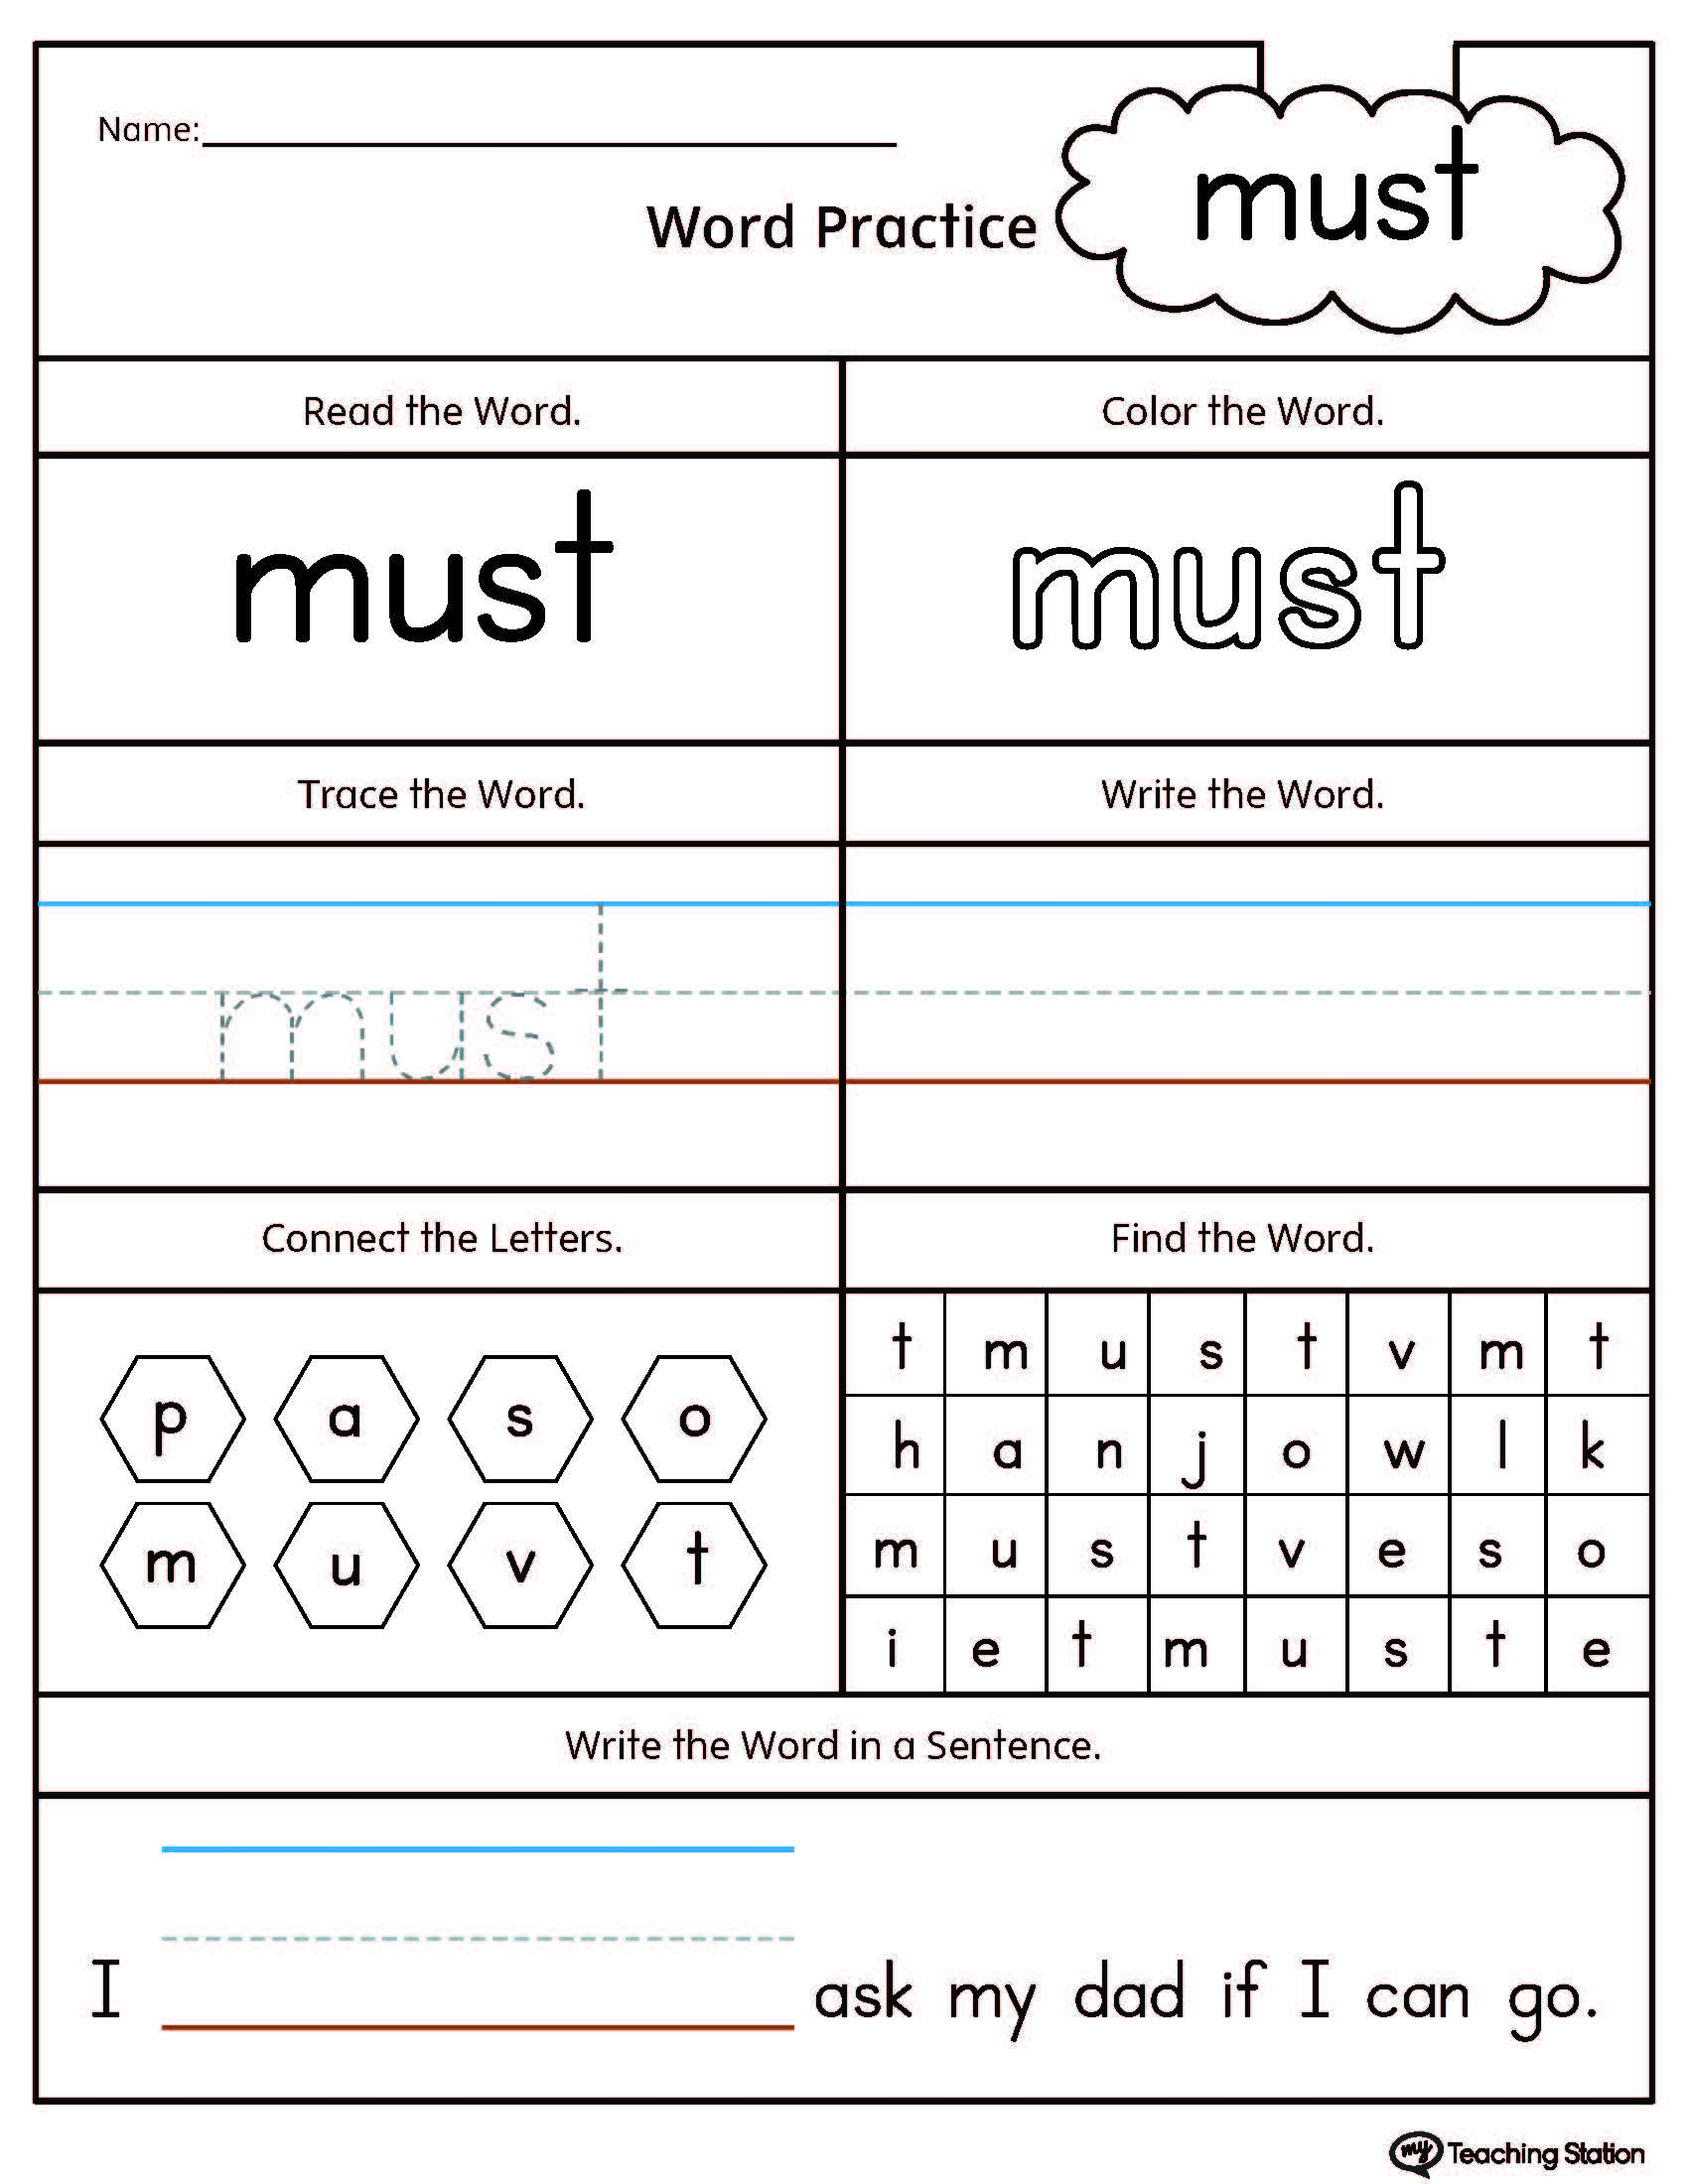 worksheet Dot To Dot Name Tracing Worksheets high frequency words printable worksheets myteachingstation com word must worksheet